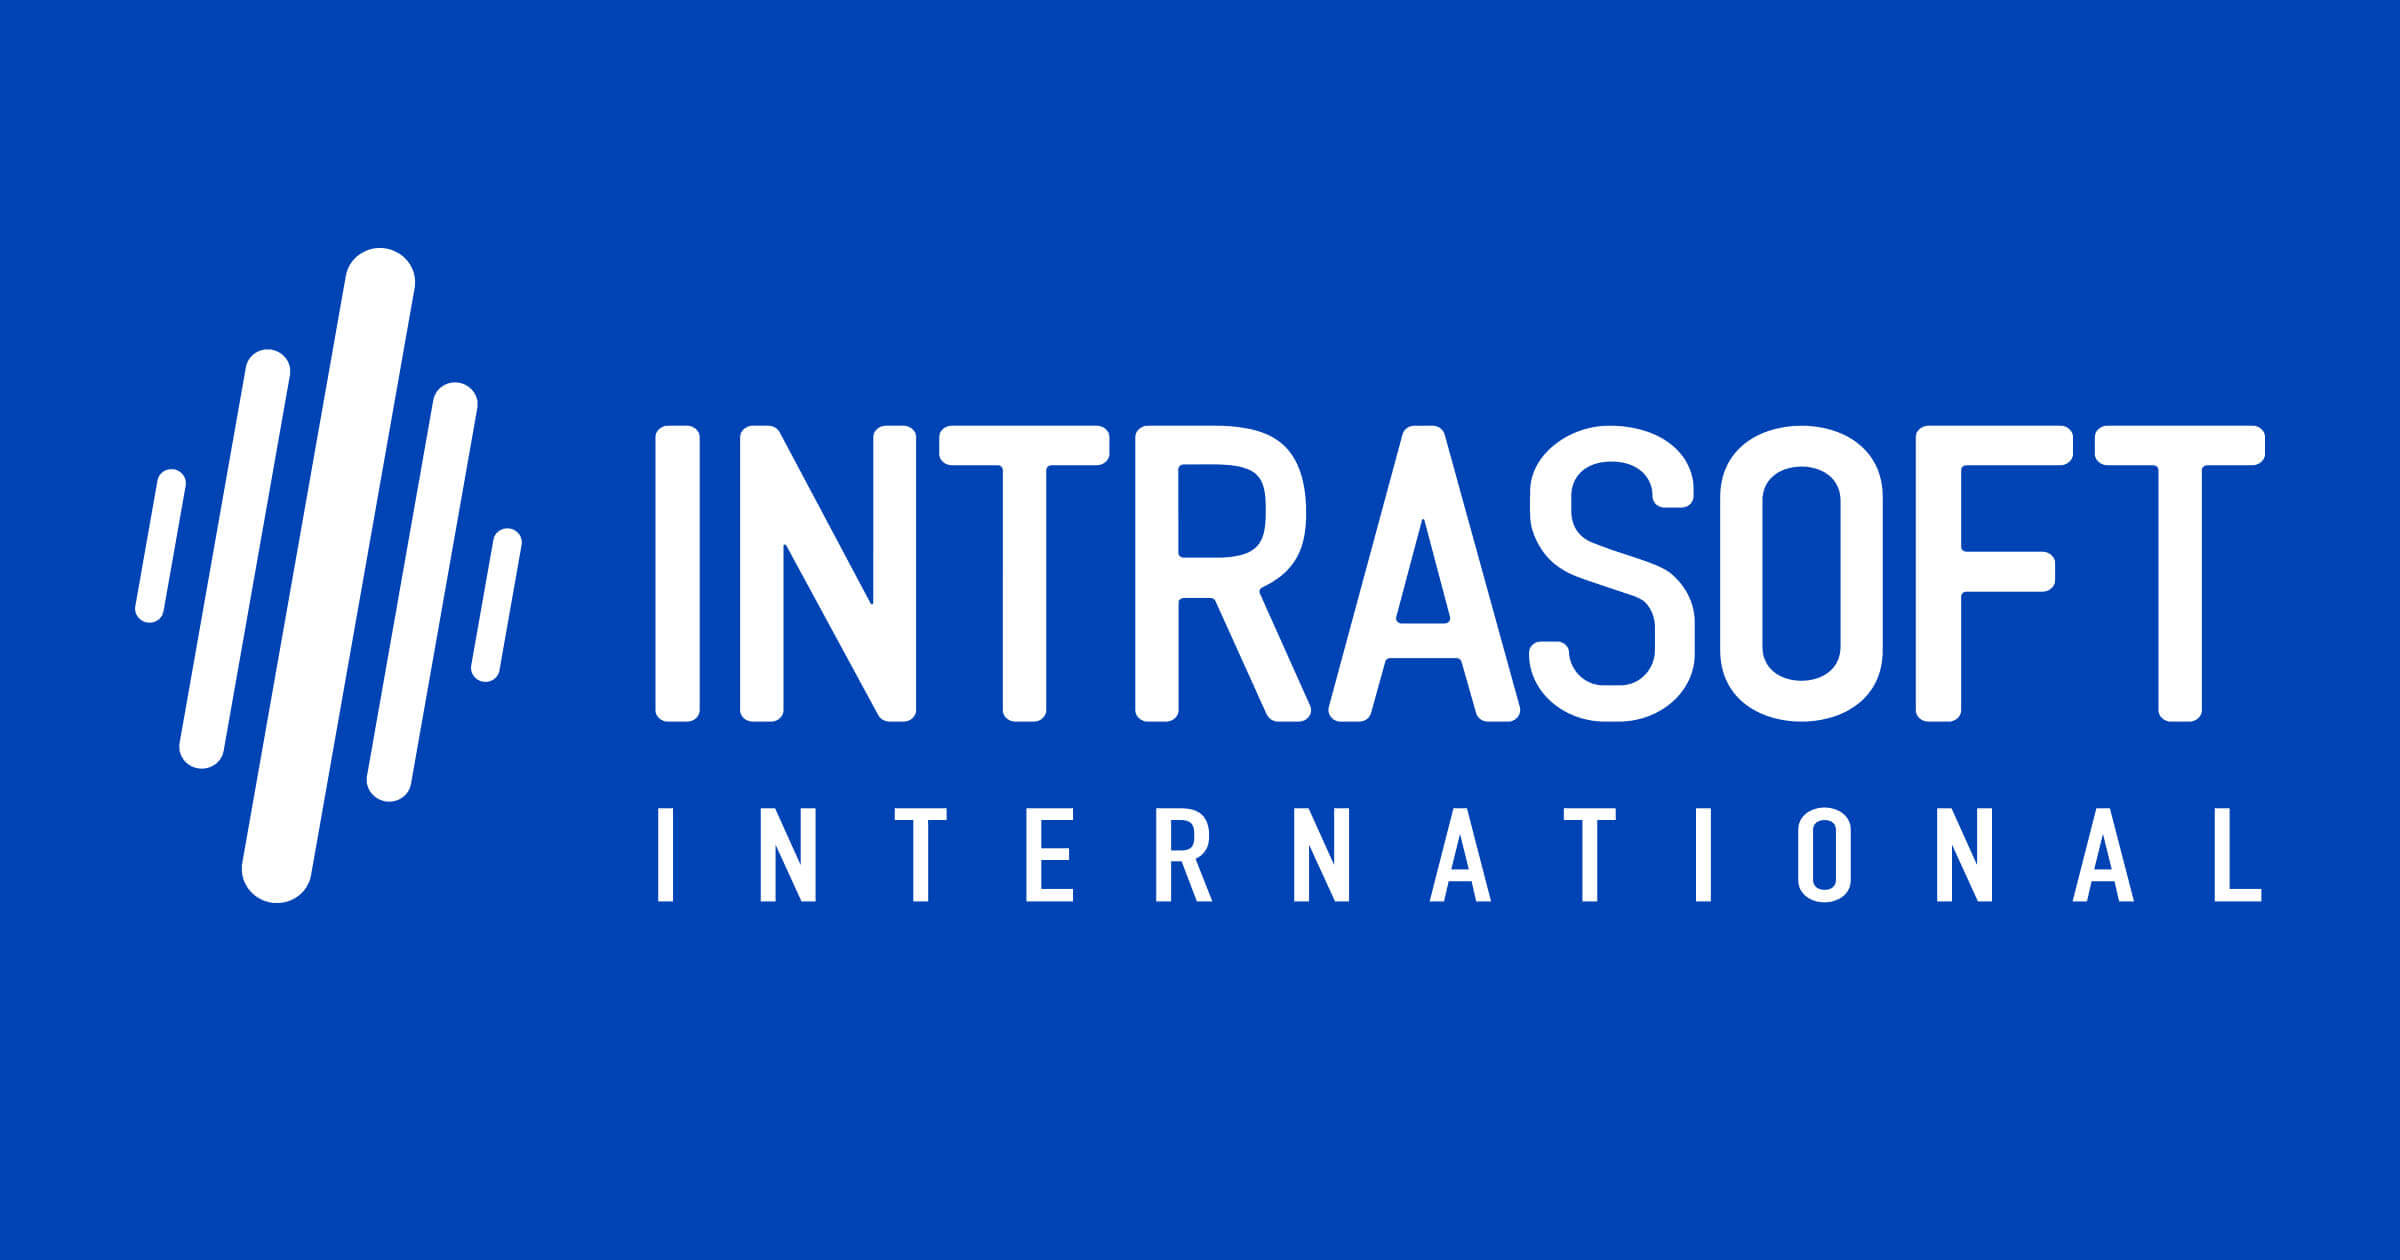 INTRASOFT INTERNATIONAL looking for a System Architect (SOA/ESB) ΠΑΙΑΝΙΑ